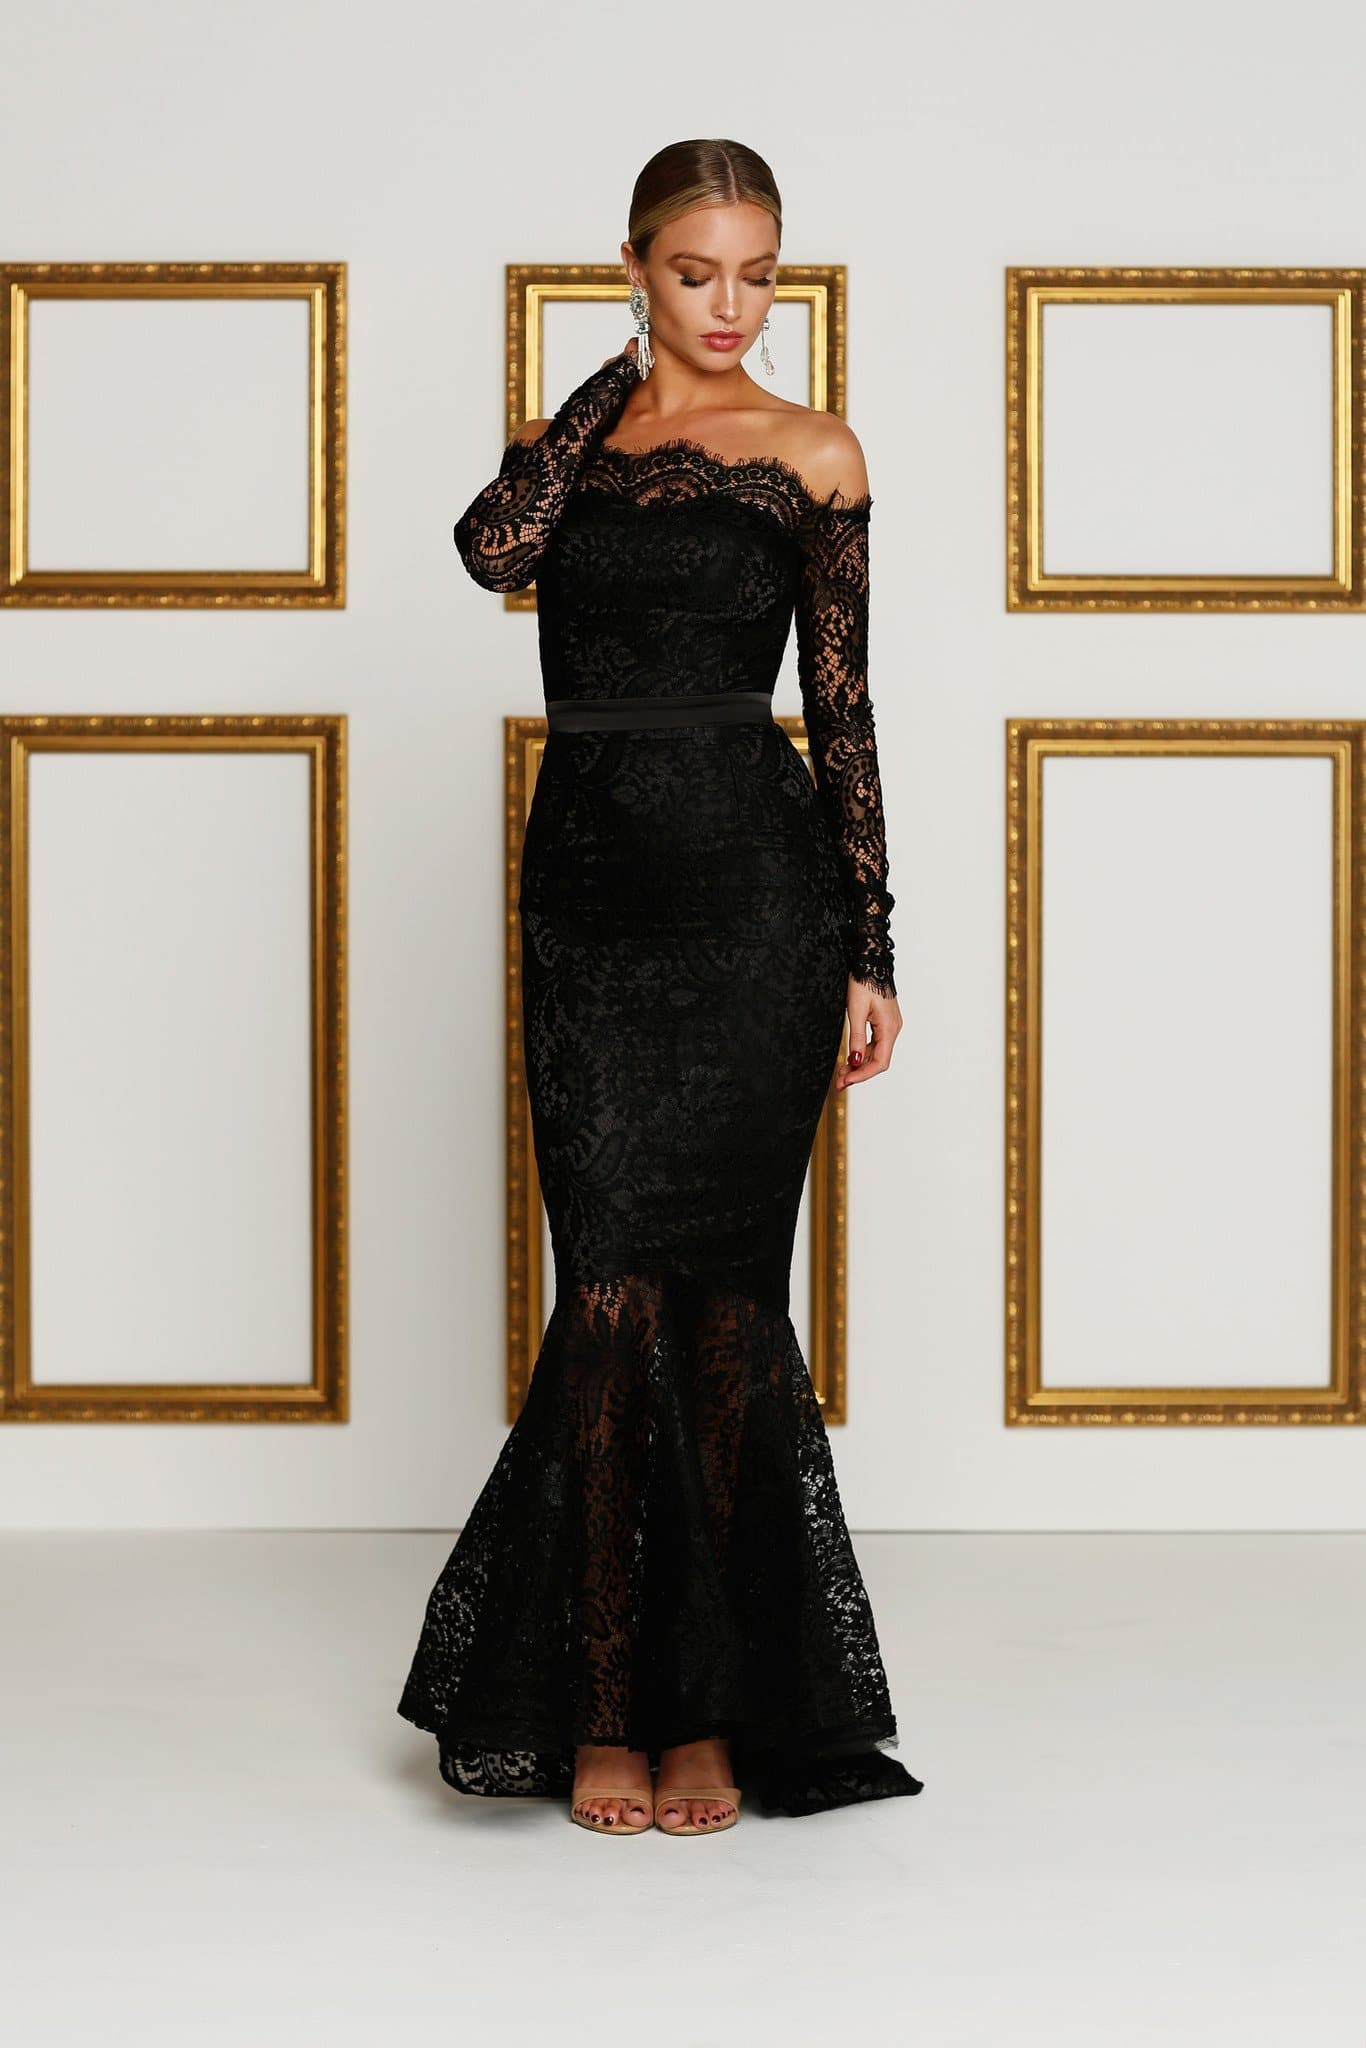 Kamali Gown - Black Lace Off-Shoulder Gown with Mermaid Tail – A&N ...